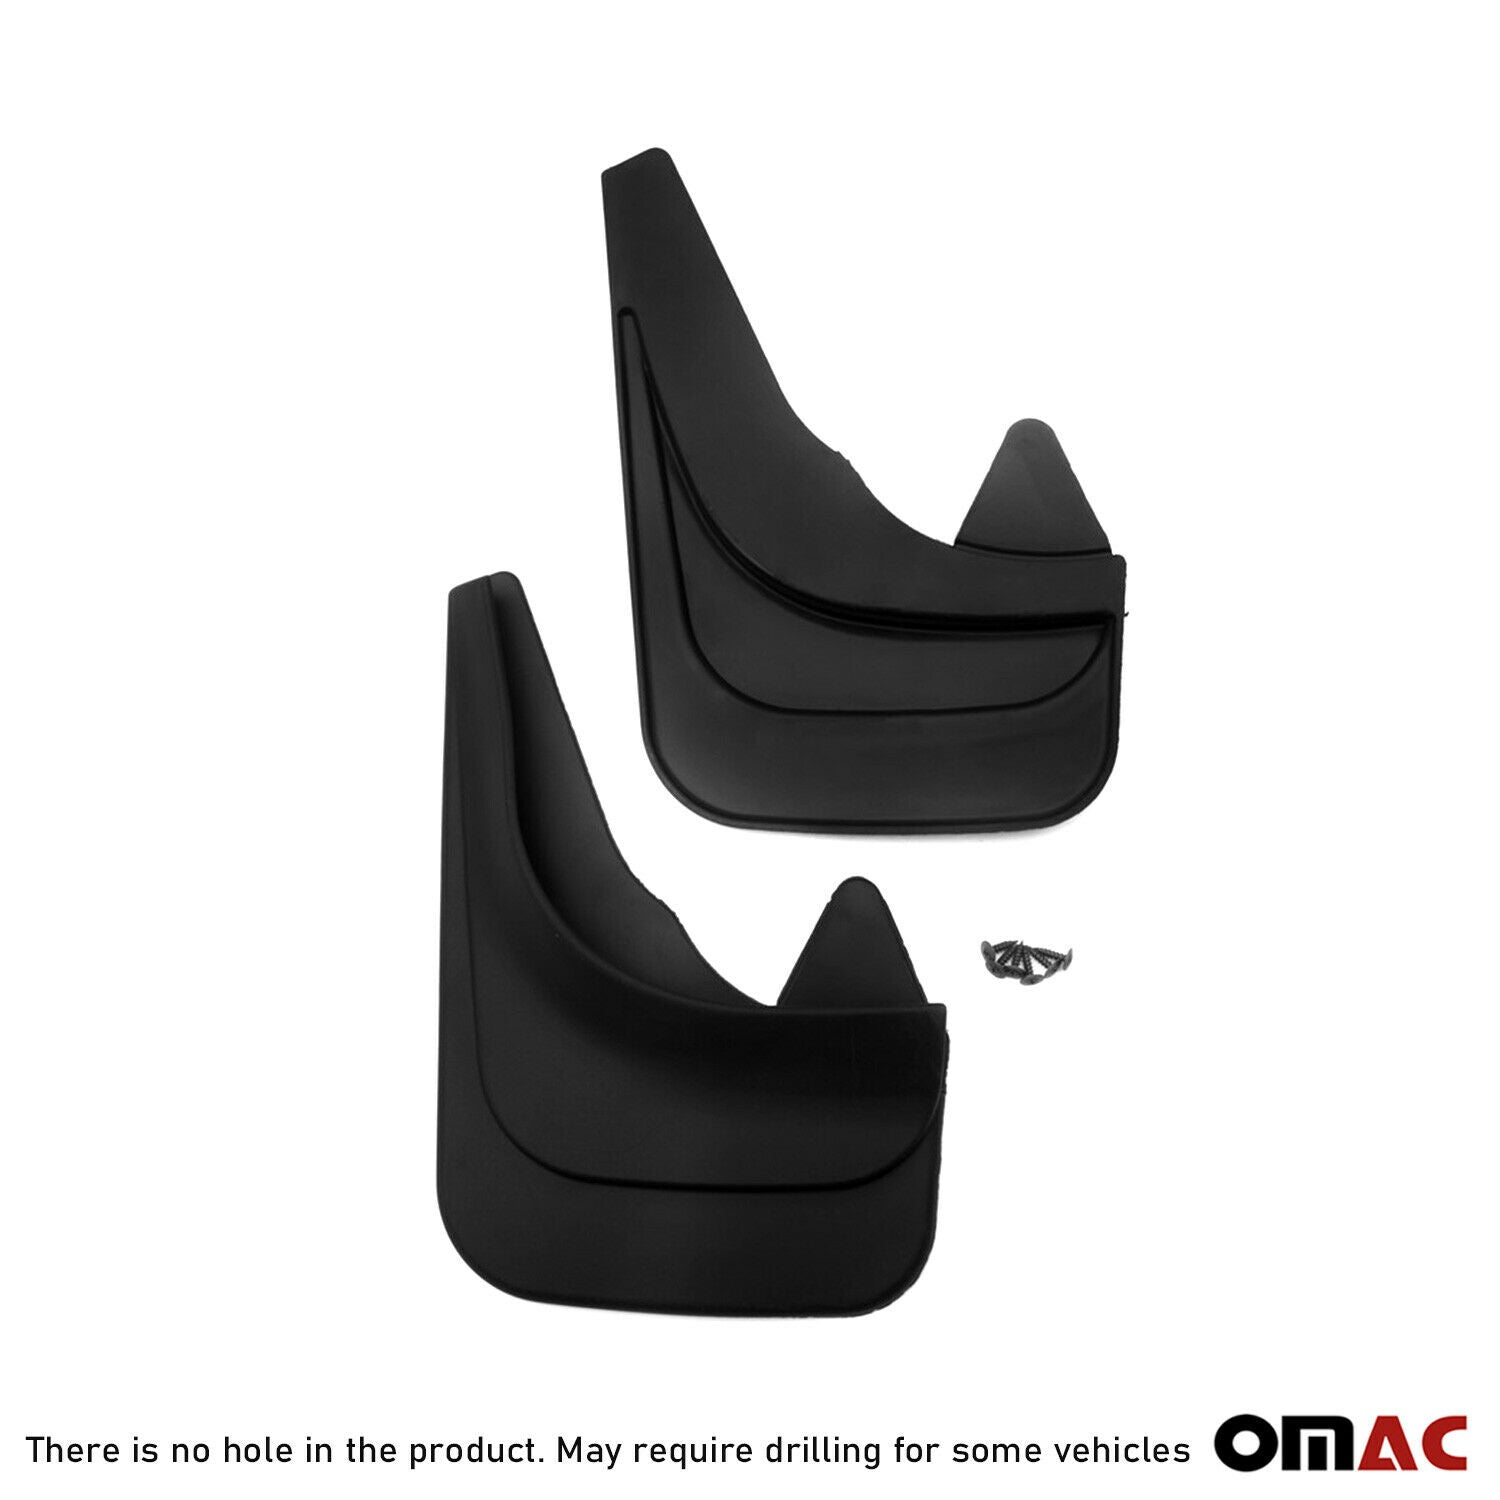 Fits Suv Hatchback Sedan Wagon Cars Front Mud Flaps Black Splash Guards 2 Pcs.